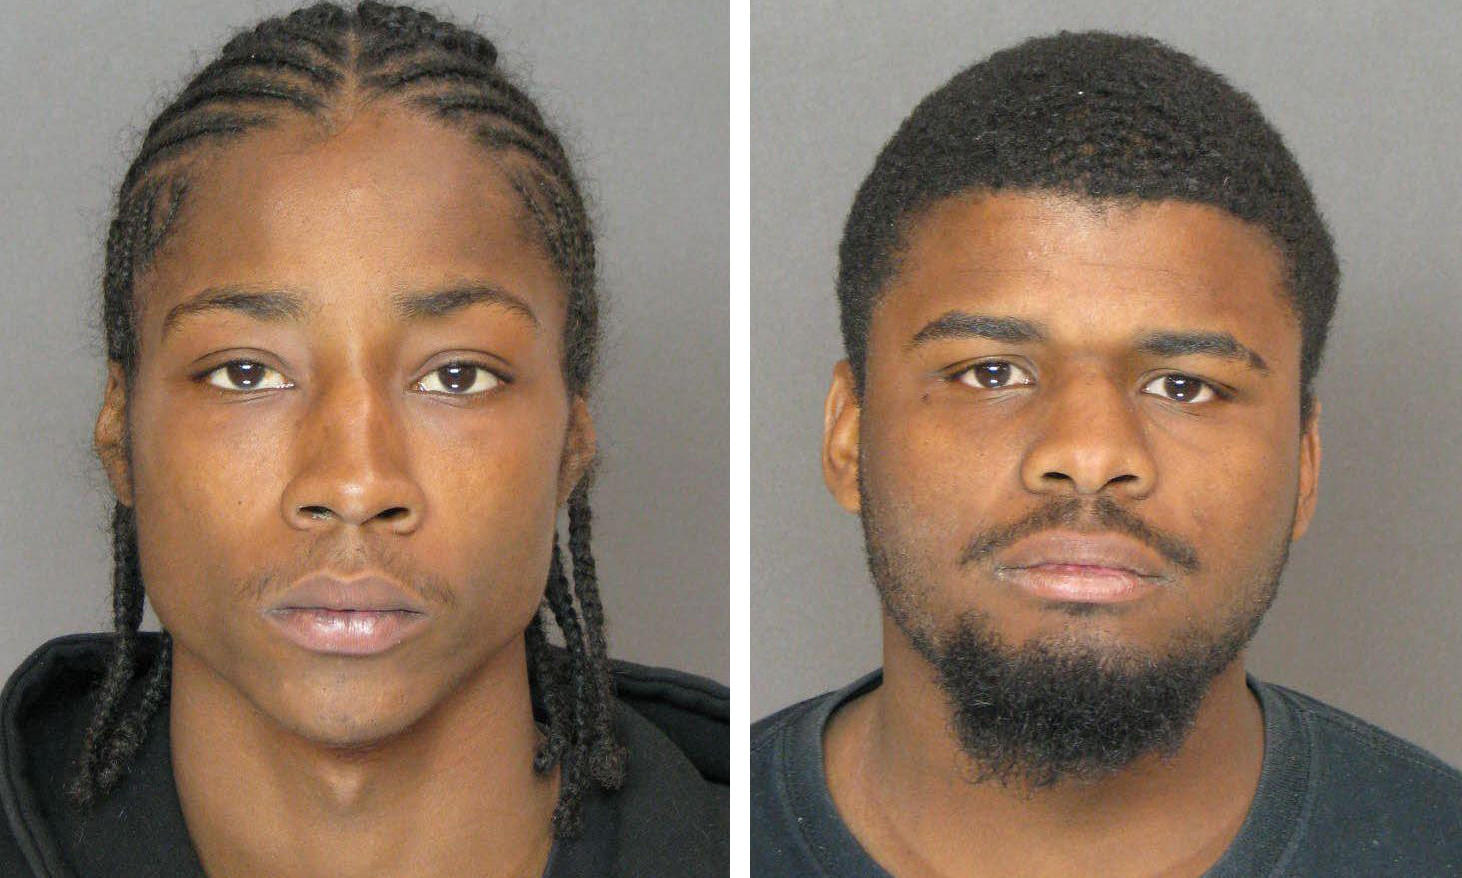 Anne Arundel County police say Corey Jemal Barnes III, 23, left, and Avon Marvin Jackson, 24, have been charged in connection with the shooting of two men last week near Brooklyn Park.